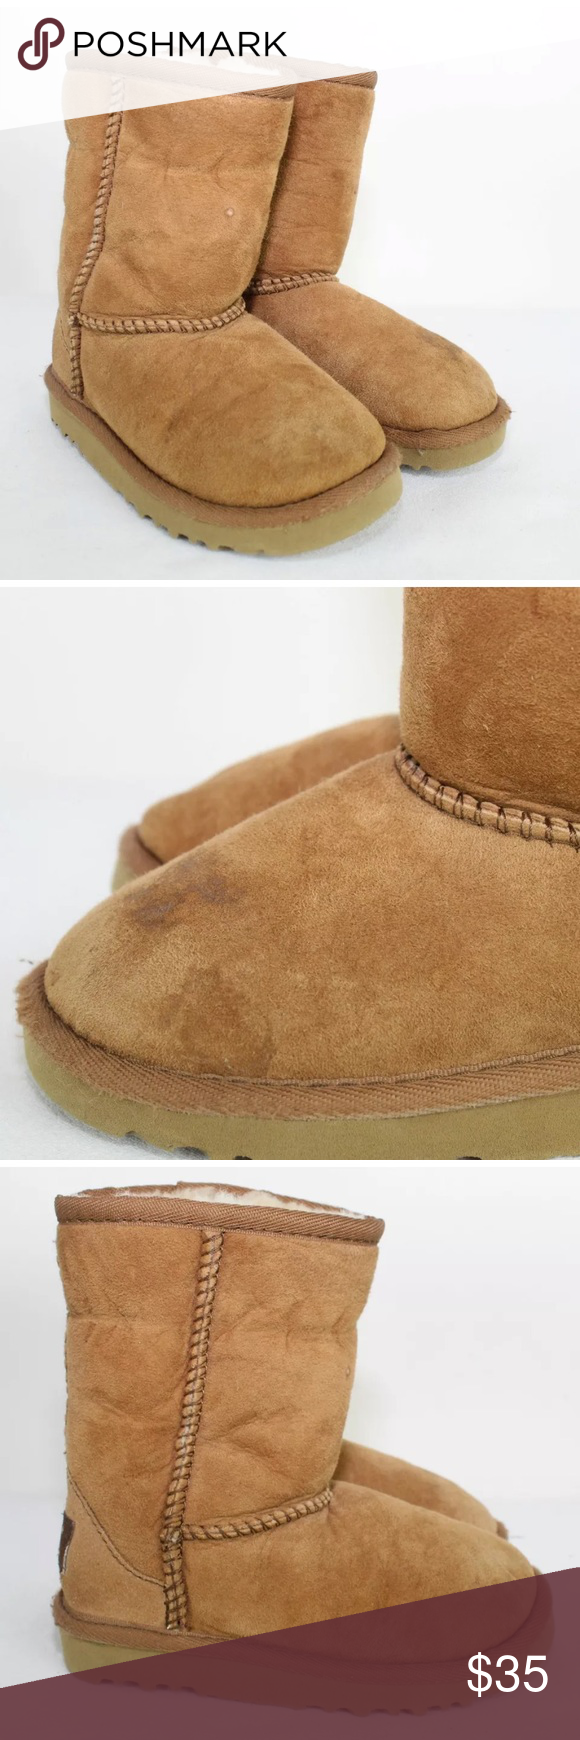 Toddler Uggs size 9 in 2020 | Uggs